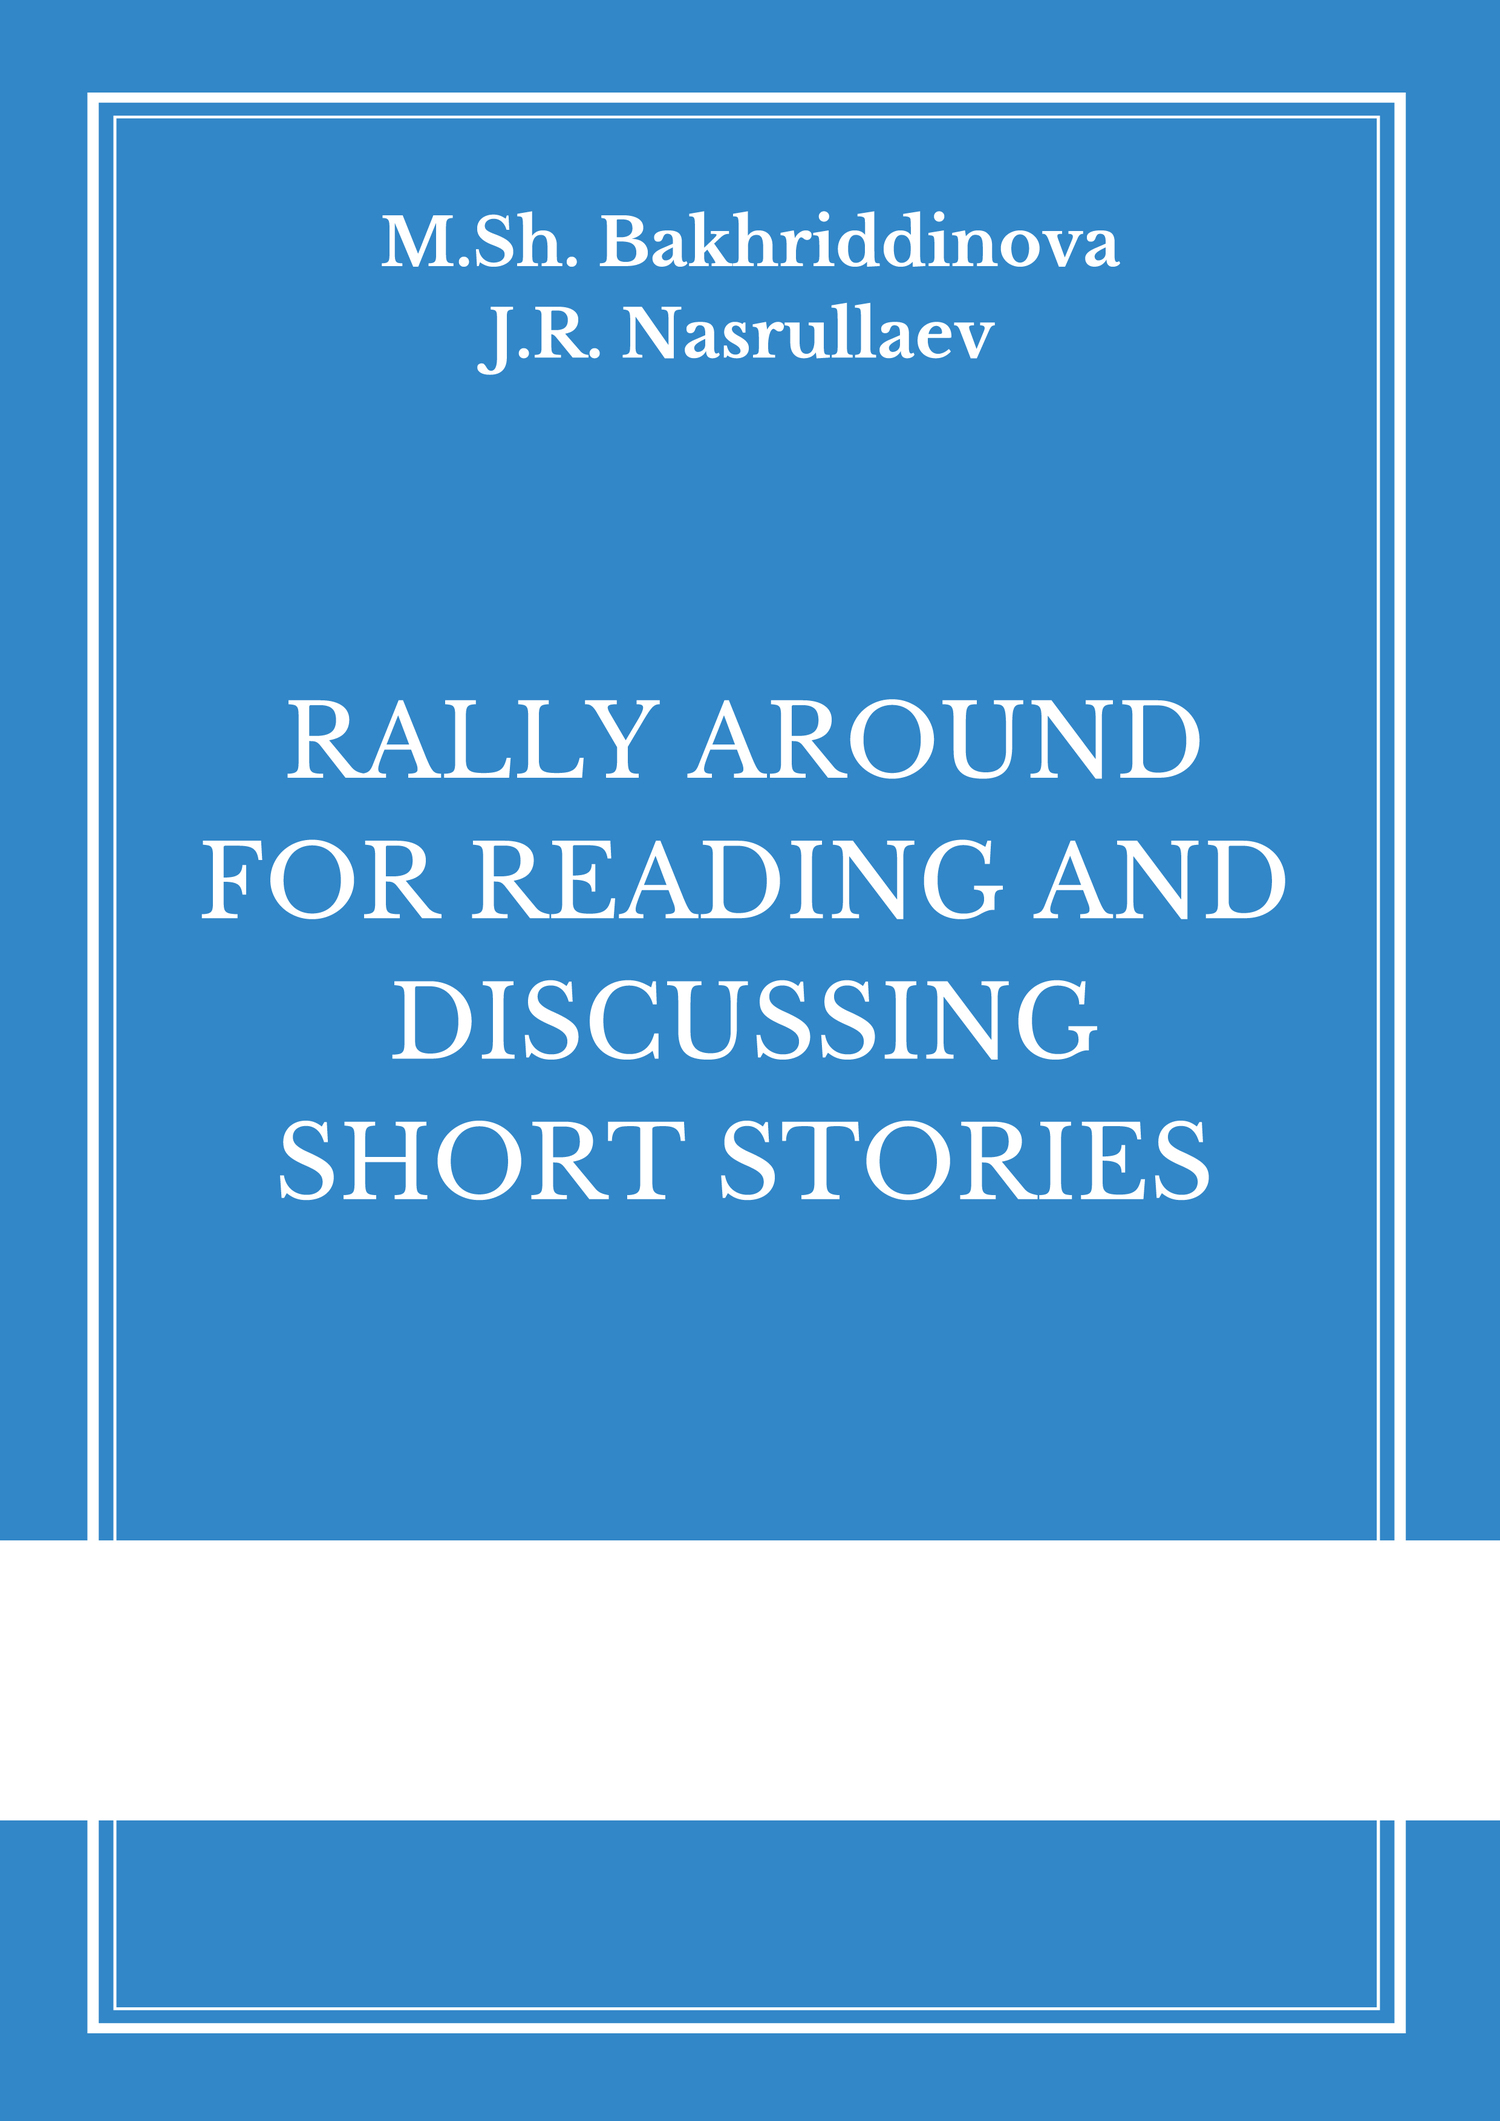 Фото - Ж. Р. Насруллаев Rally around for reading and discussing short stories agent based snort in distributed environment